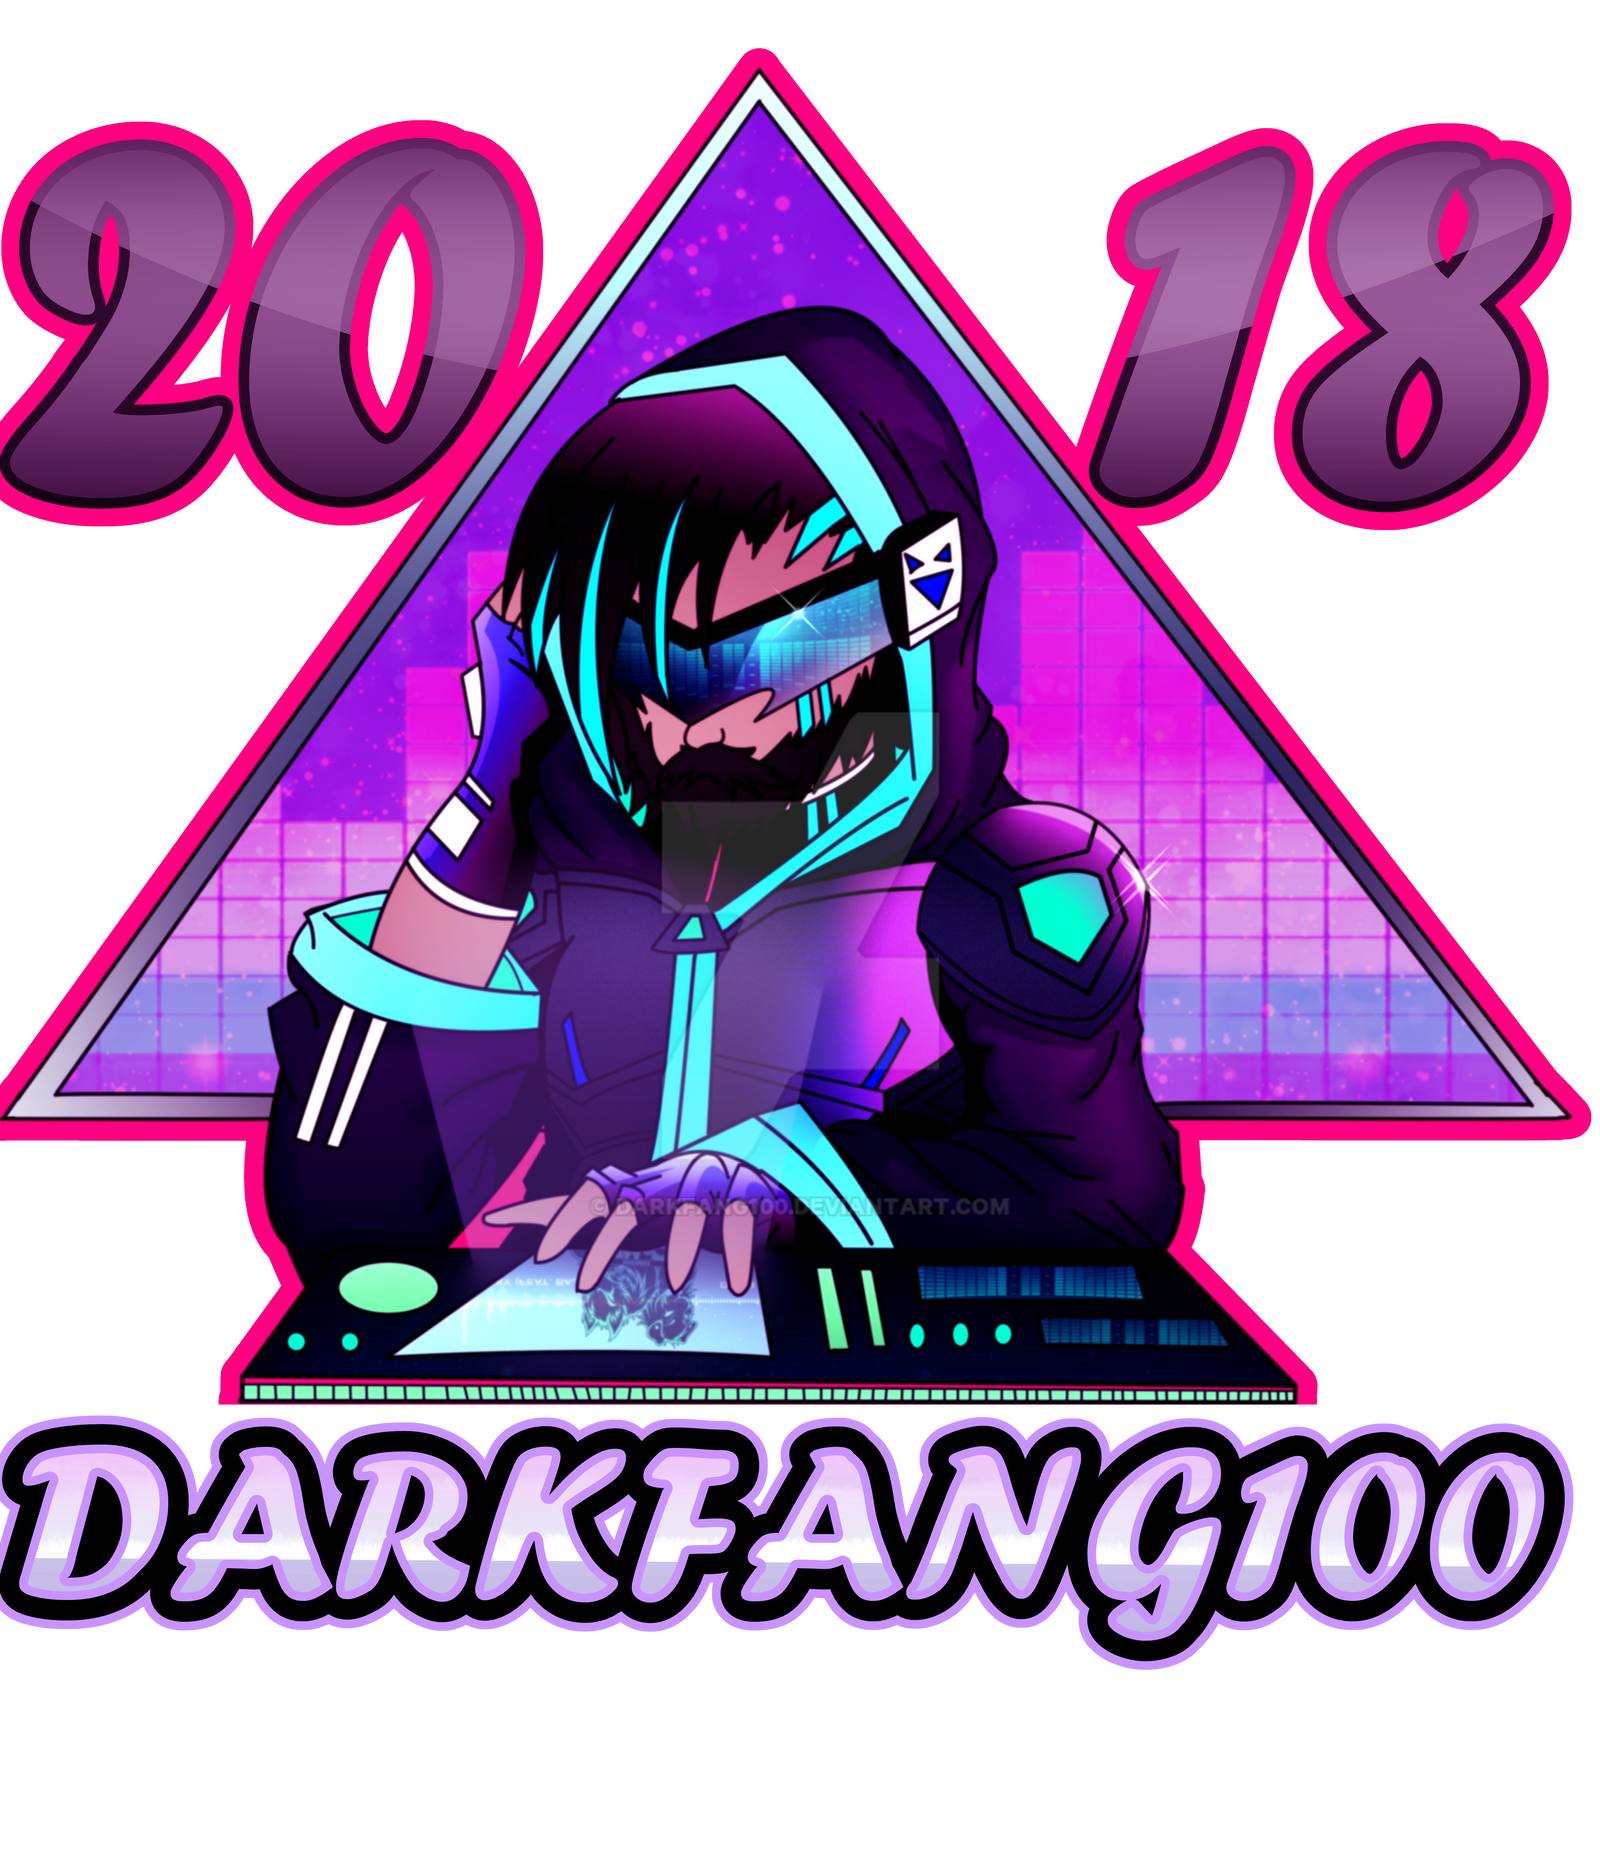 darkfang100's Profile Picture